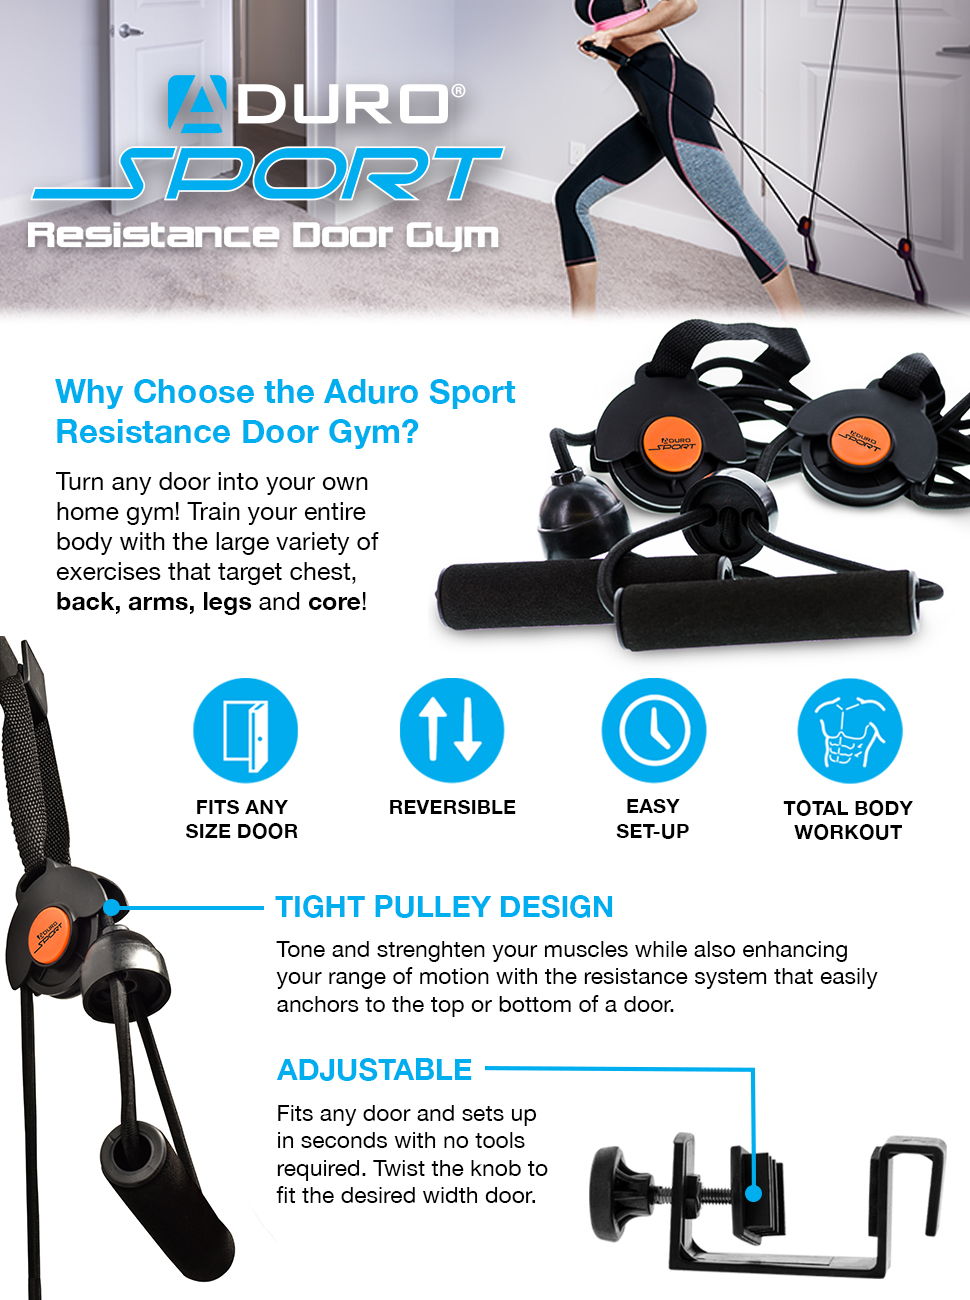 Aduro Sport Door Gym Home Gym Total Body Resistance Training Exercise System Foam Padded Handles Fits Any Door  sc 1 st  Amazon.com & Amazon.com : Aduro Sport Door Gym Home Gym Total Body Resistance ...